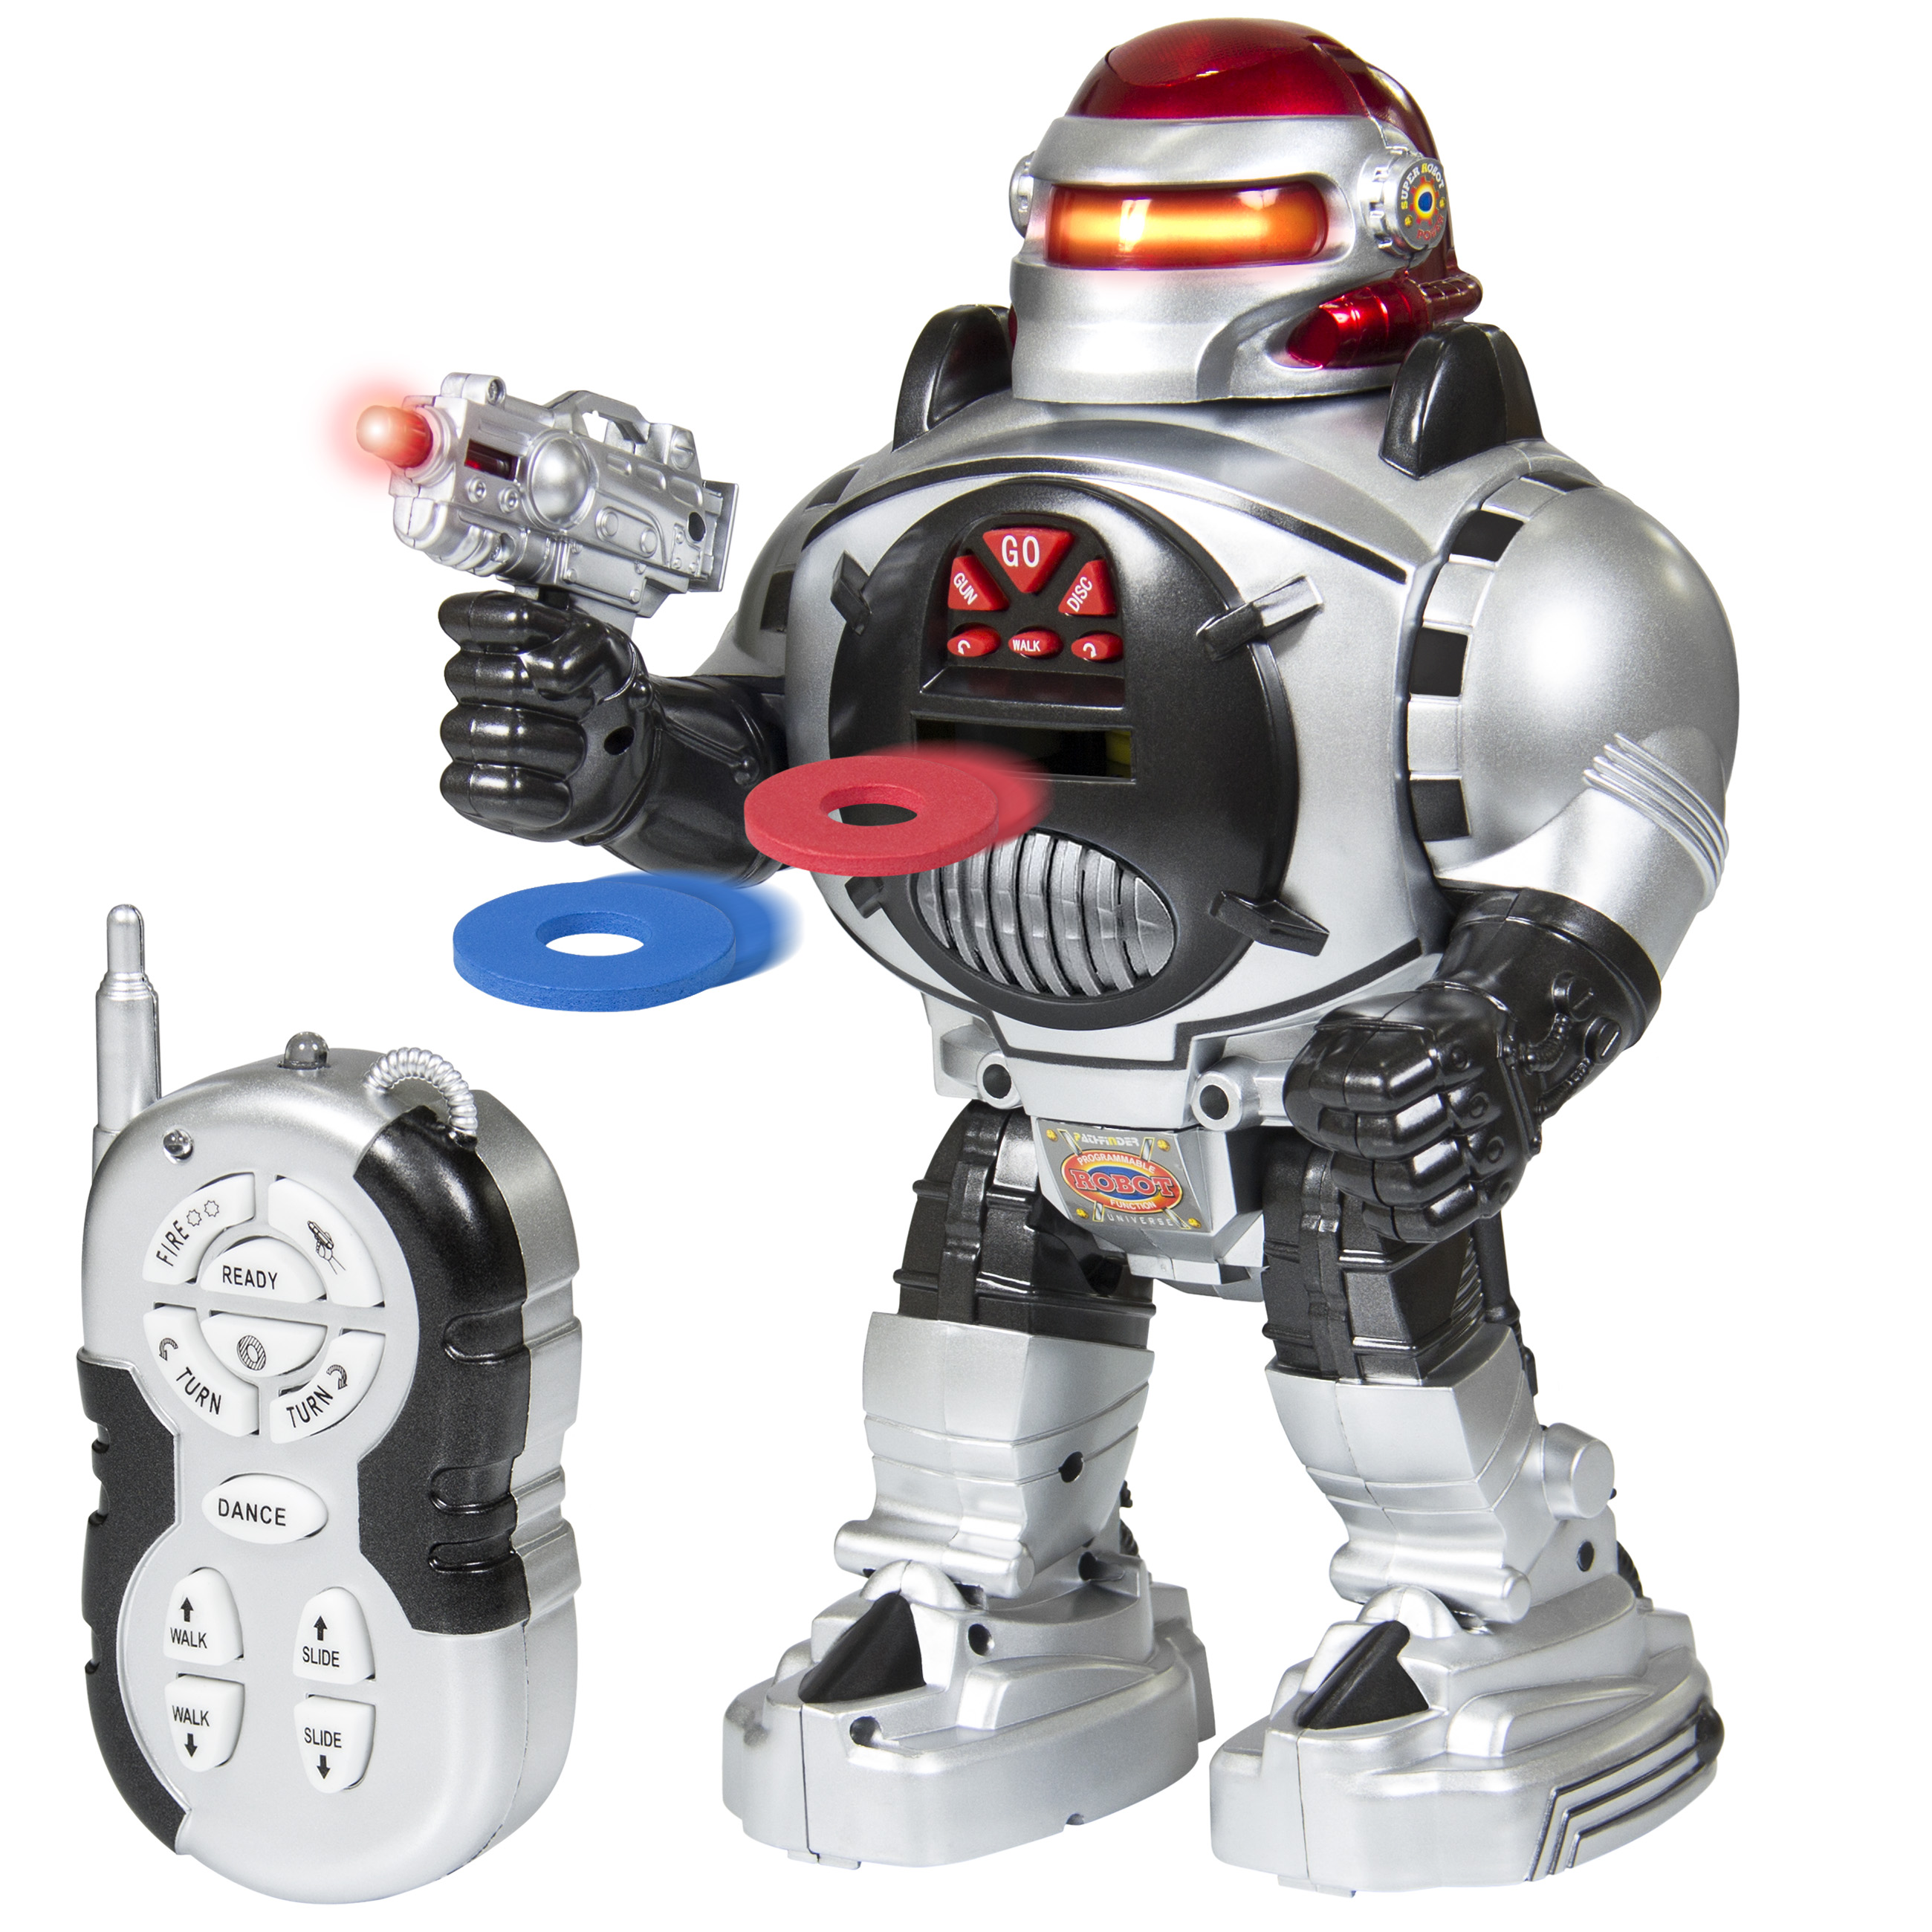 Best Choice Products RC Disc Shooting Robot Toy w/ Walking Talking Dancing Actions and Lights - Multicolor